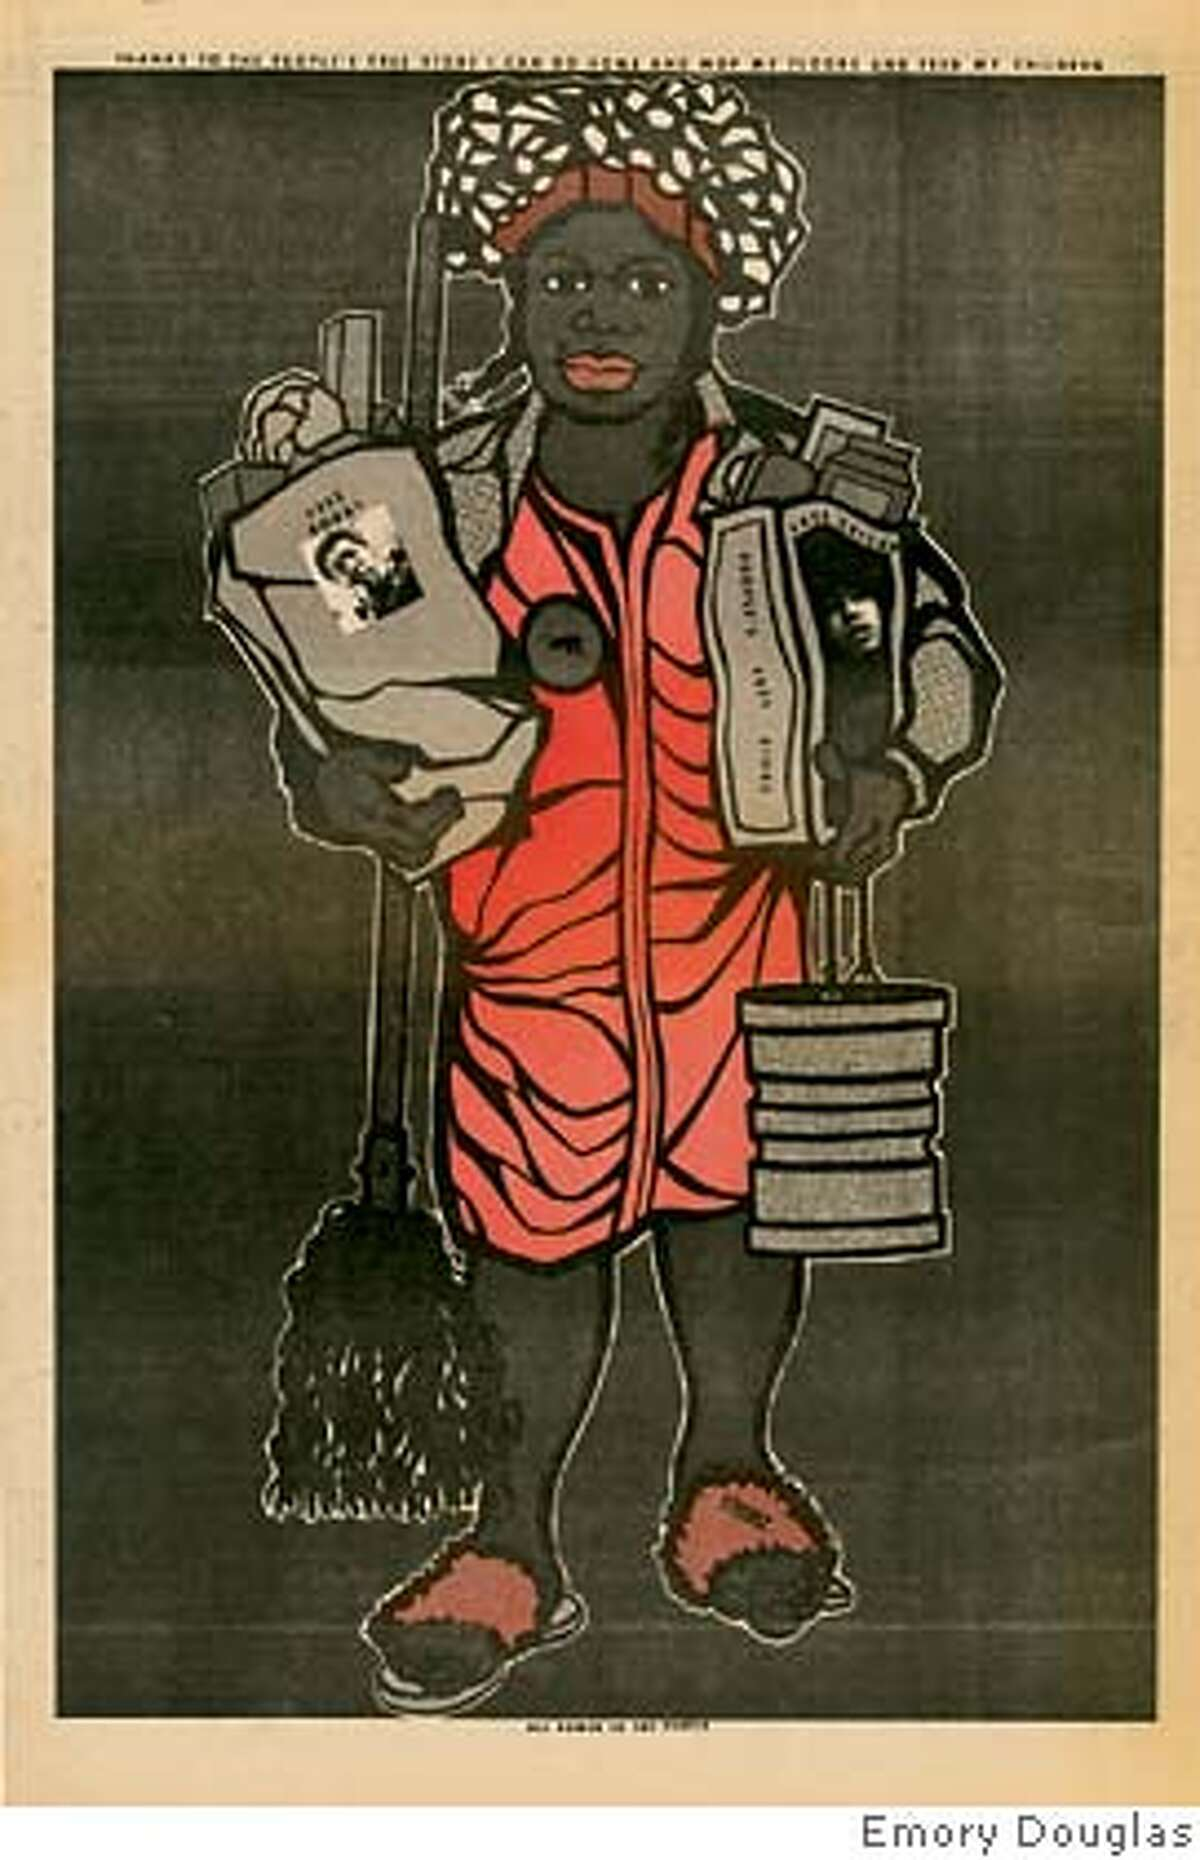 All artwork copyright � Emory Douglas from BLACK PANTHER: THE REVOLUTIONARY ART OF EMORY DOUGLAS edited by Sam Durant, Rizzoli New York, 2007., unless otherwise noted and credit for the book must read � BLACK PANTHER: THE REVOLUTIONARY ART OF EMORY DOUGLAS edited by Sam Durant, Rizzoli New York, 2007.